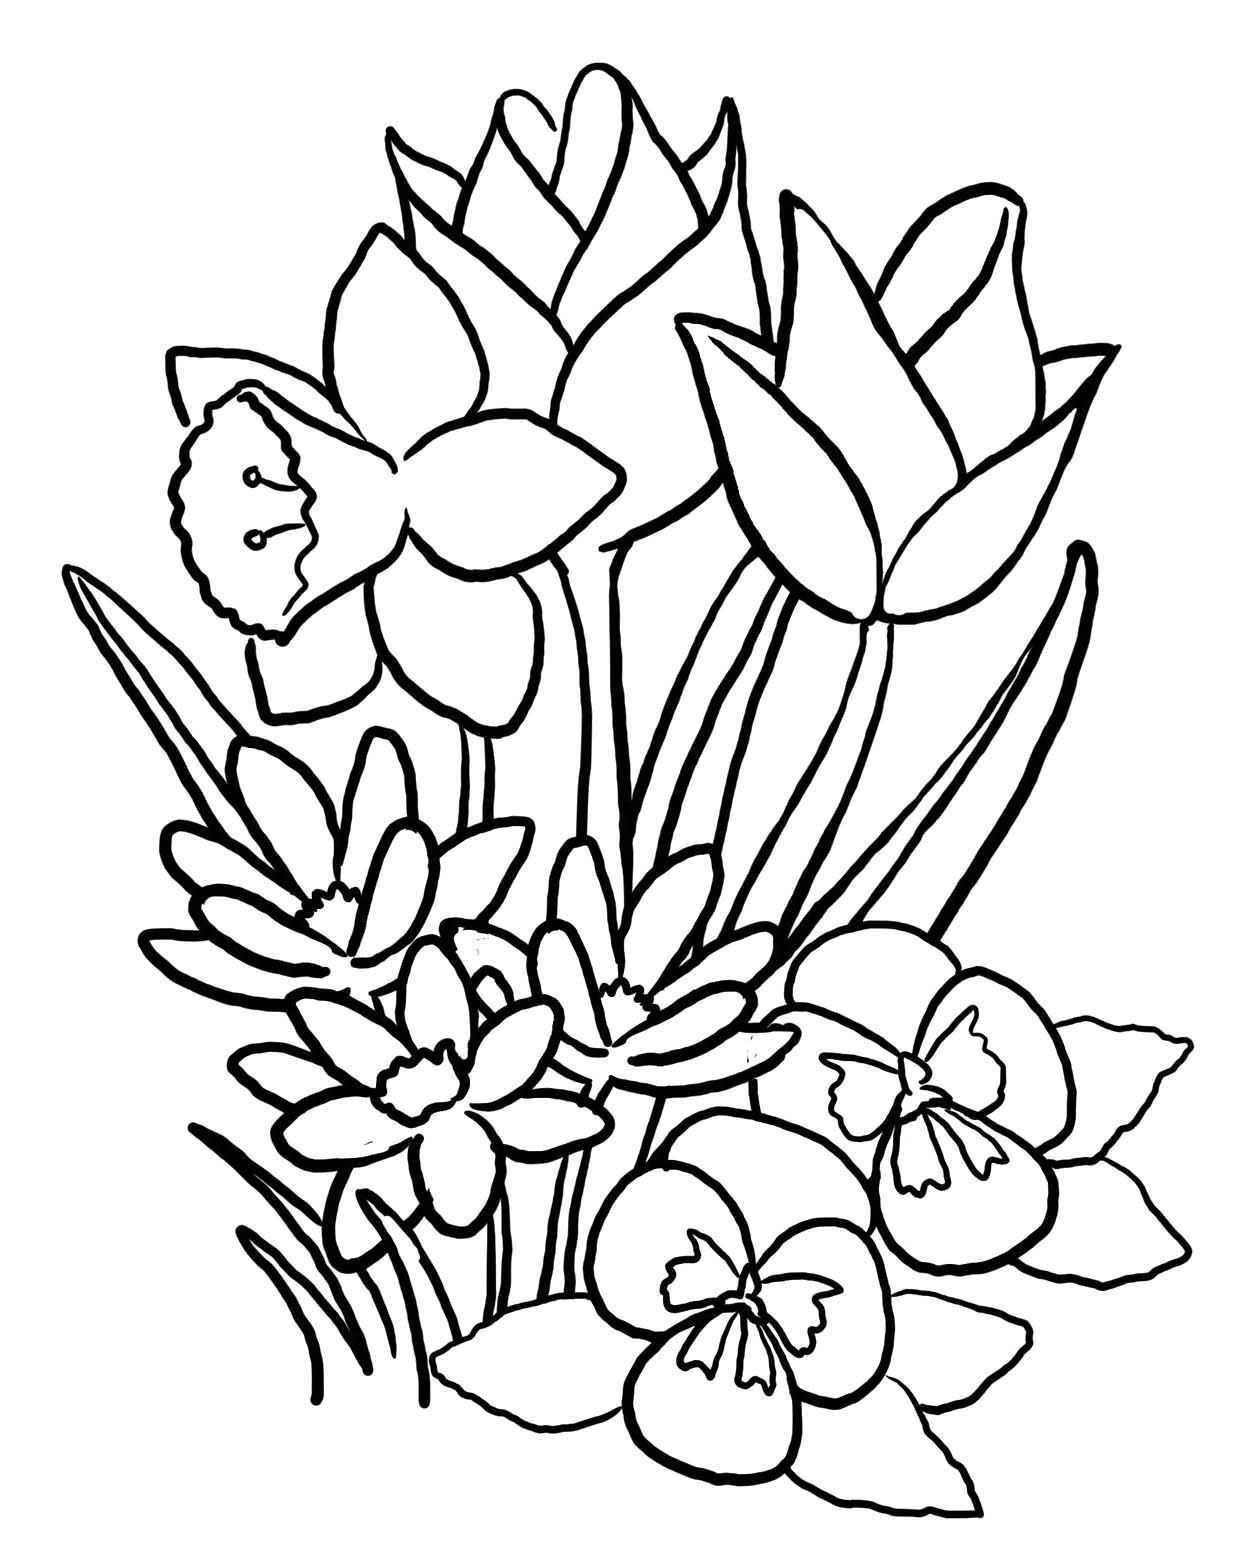 flowers pictures to colour flower coloring pages for adults best coloring pages for pictures flowers to colour